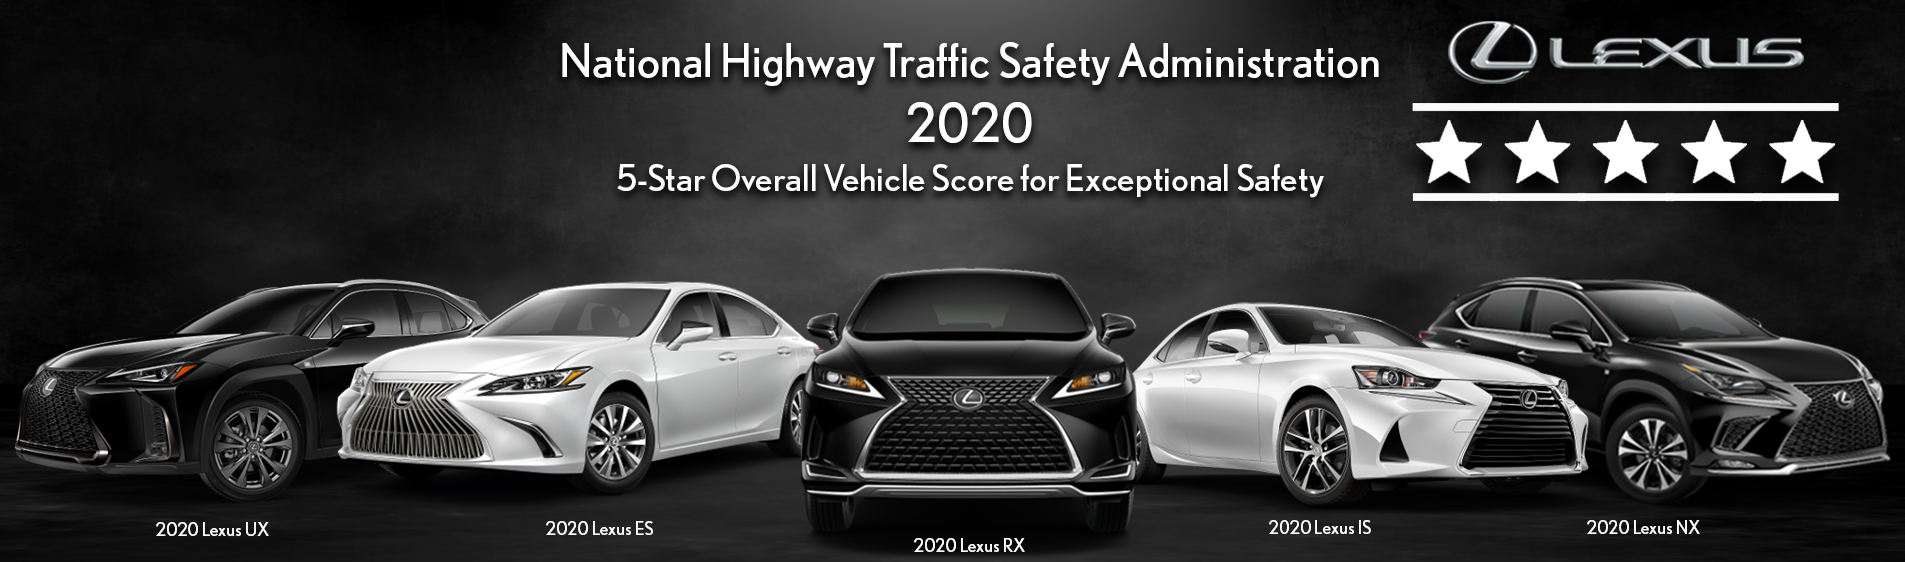 5-Star Overall Vehicle Score for Exceptional Safety